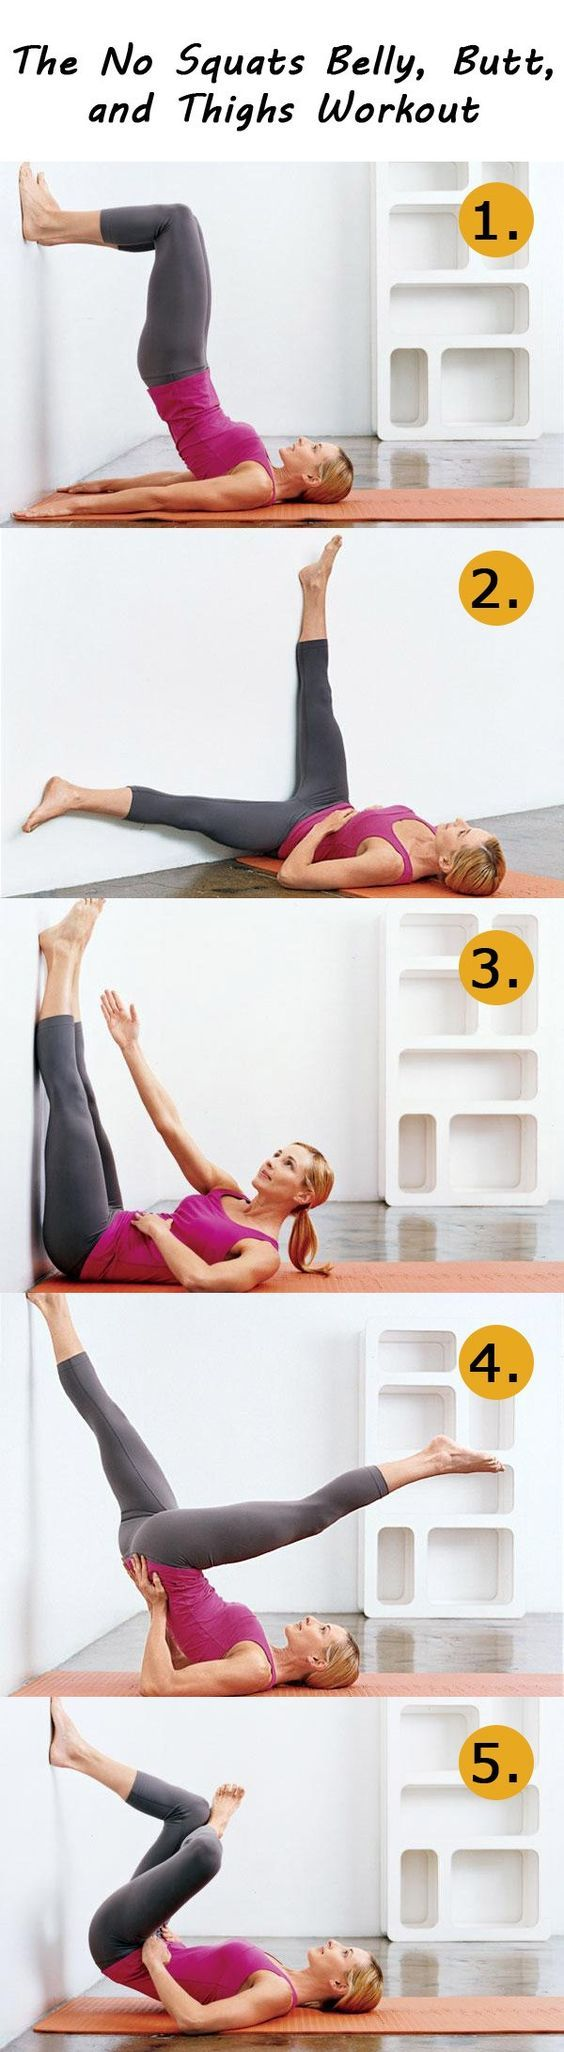 3 LOWER | With this fantastic workout routine you will be able to flatten your belly, slim your thighs, and firm your butt in 2 weeks!